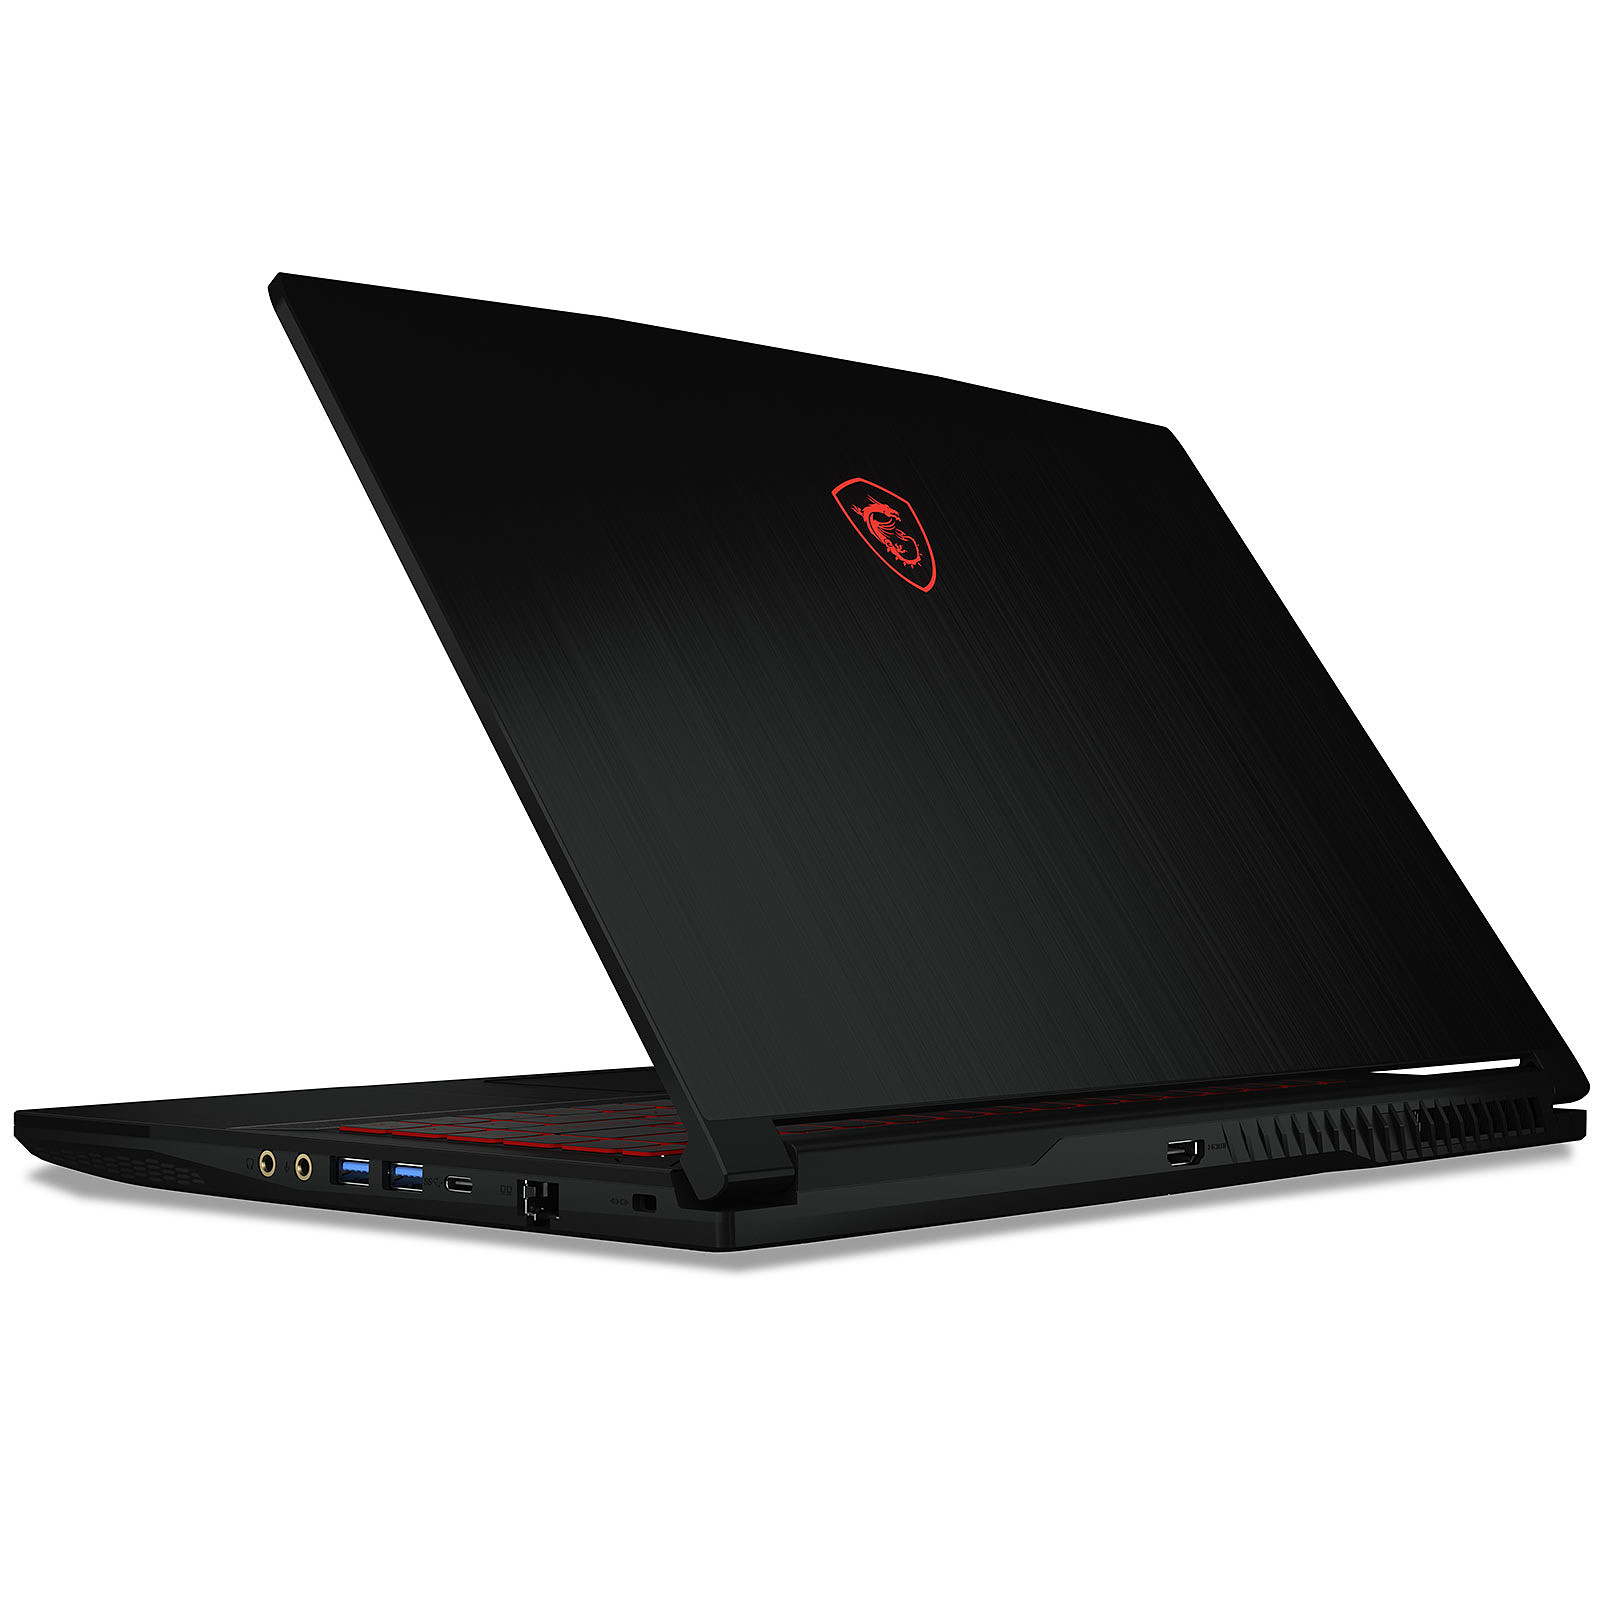 Ordinateur portable Gamer MSI GF63, Intel Core i7 Hexa Core, 16 Go DDR4, SSD 256 Go Nvme, 1 To HDD, GTX 1050Ti 4 Go, 15.6 pouces Full HD LED, W10 64bits, informatique Reunion 974, Futur Réunion informatique